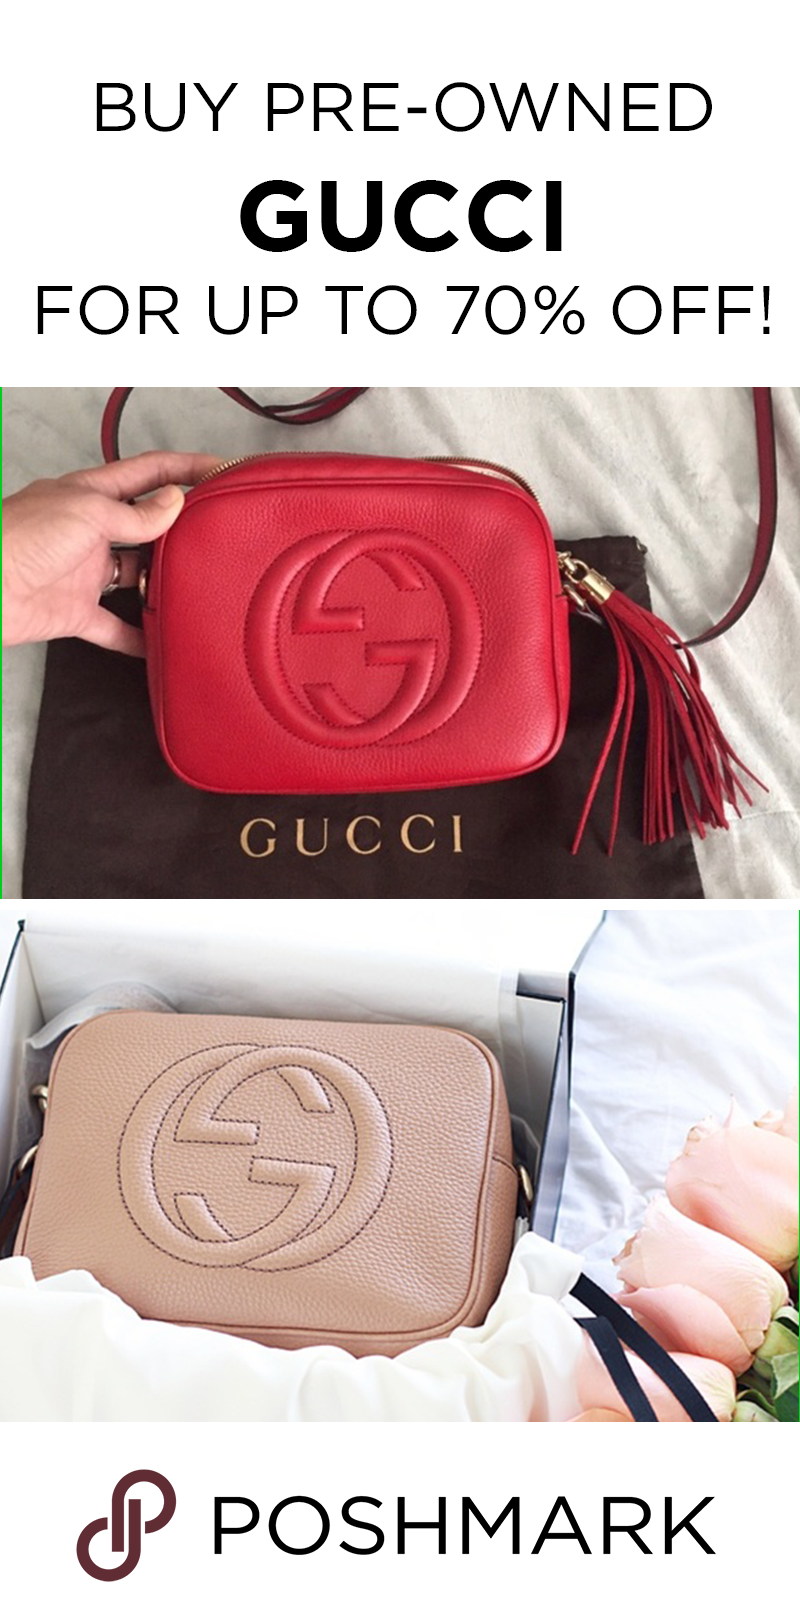 Find authentic Gucci bags up to 70% off on Poshmark